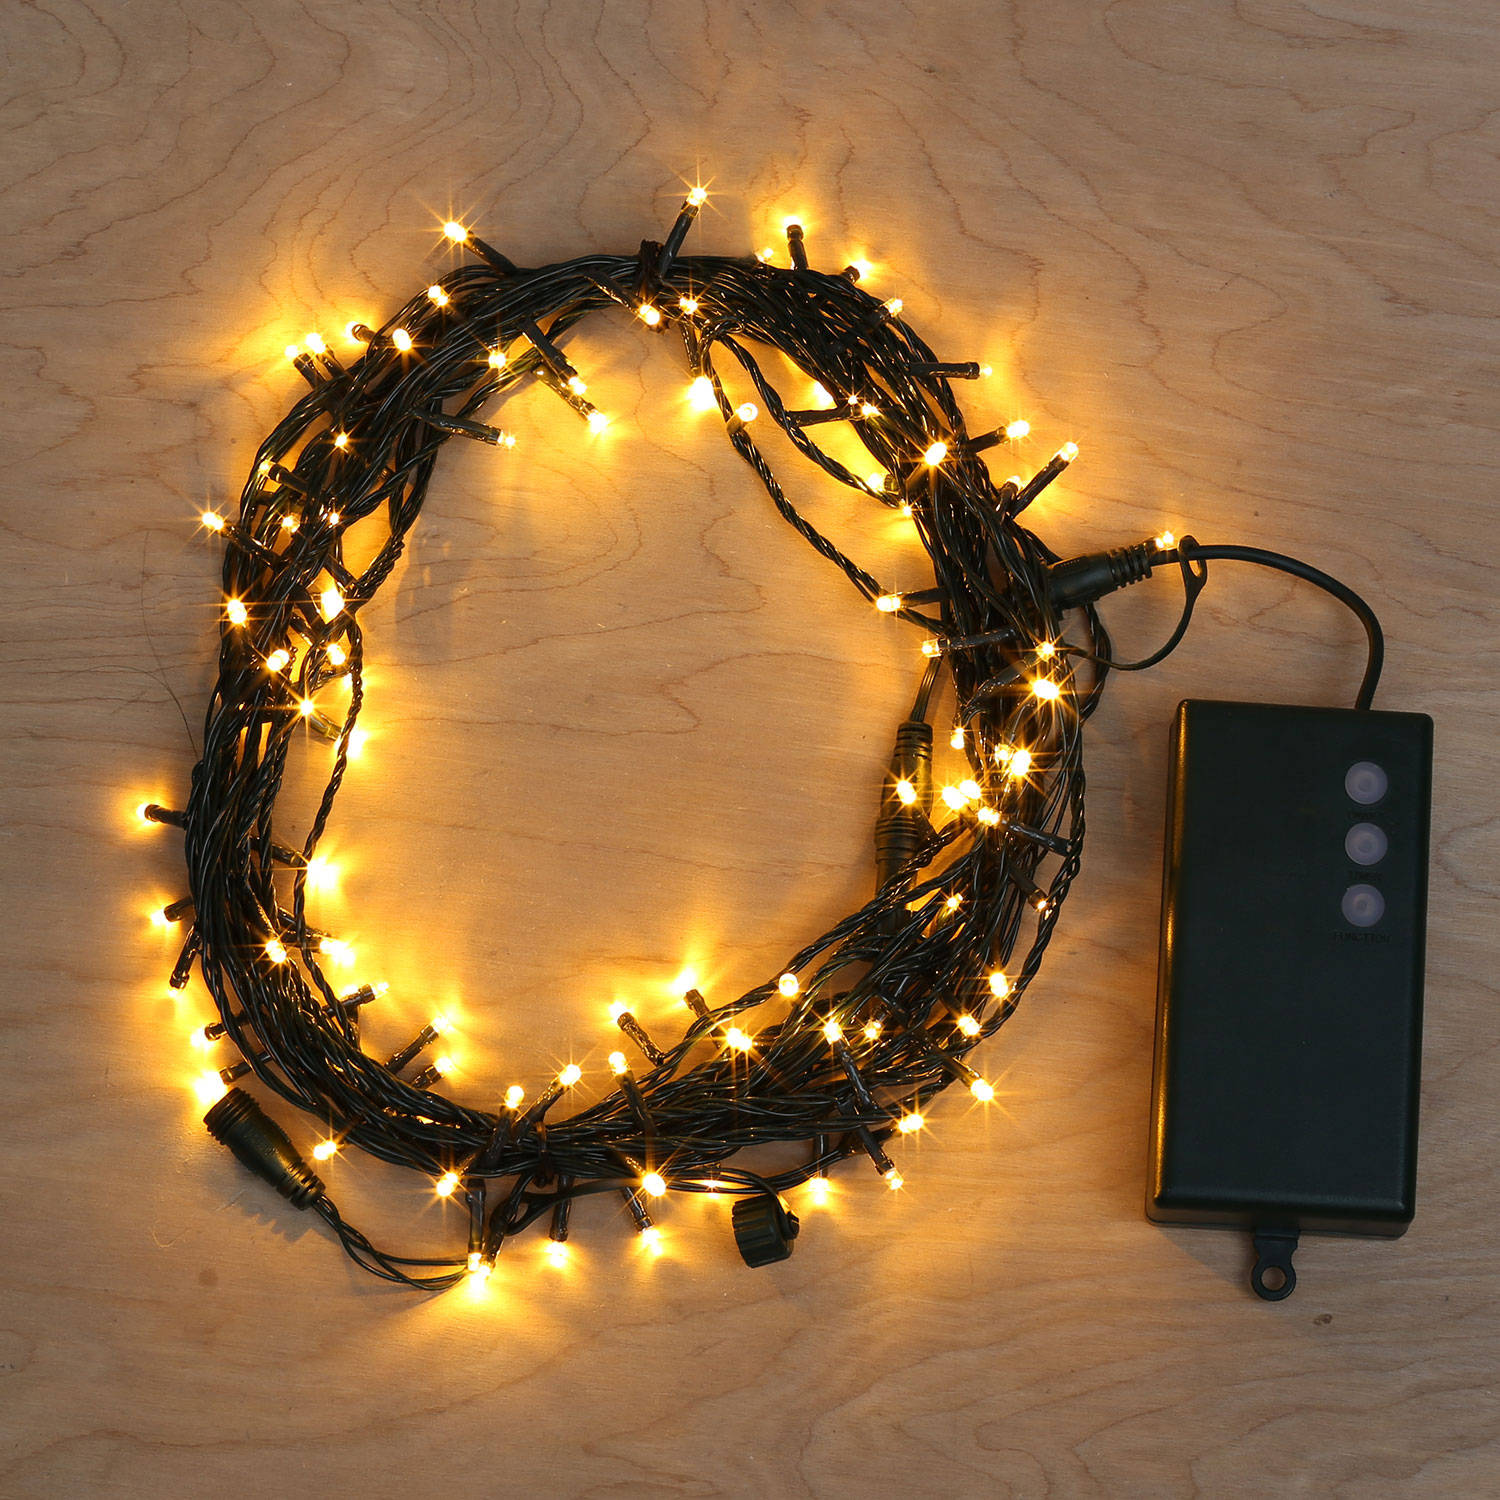 No String Xmas Lights : Events, Promotions and Inspirations from Lights.com